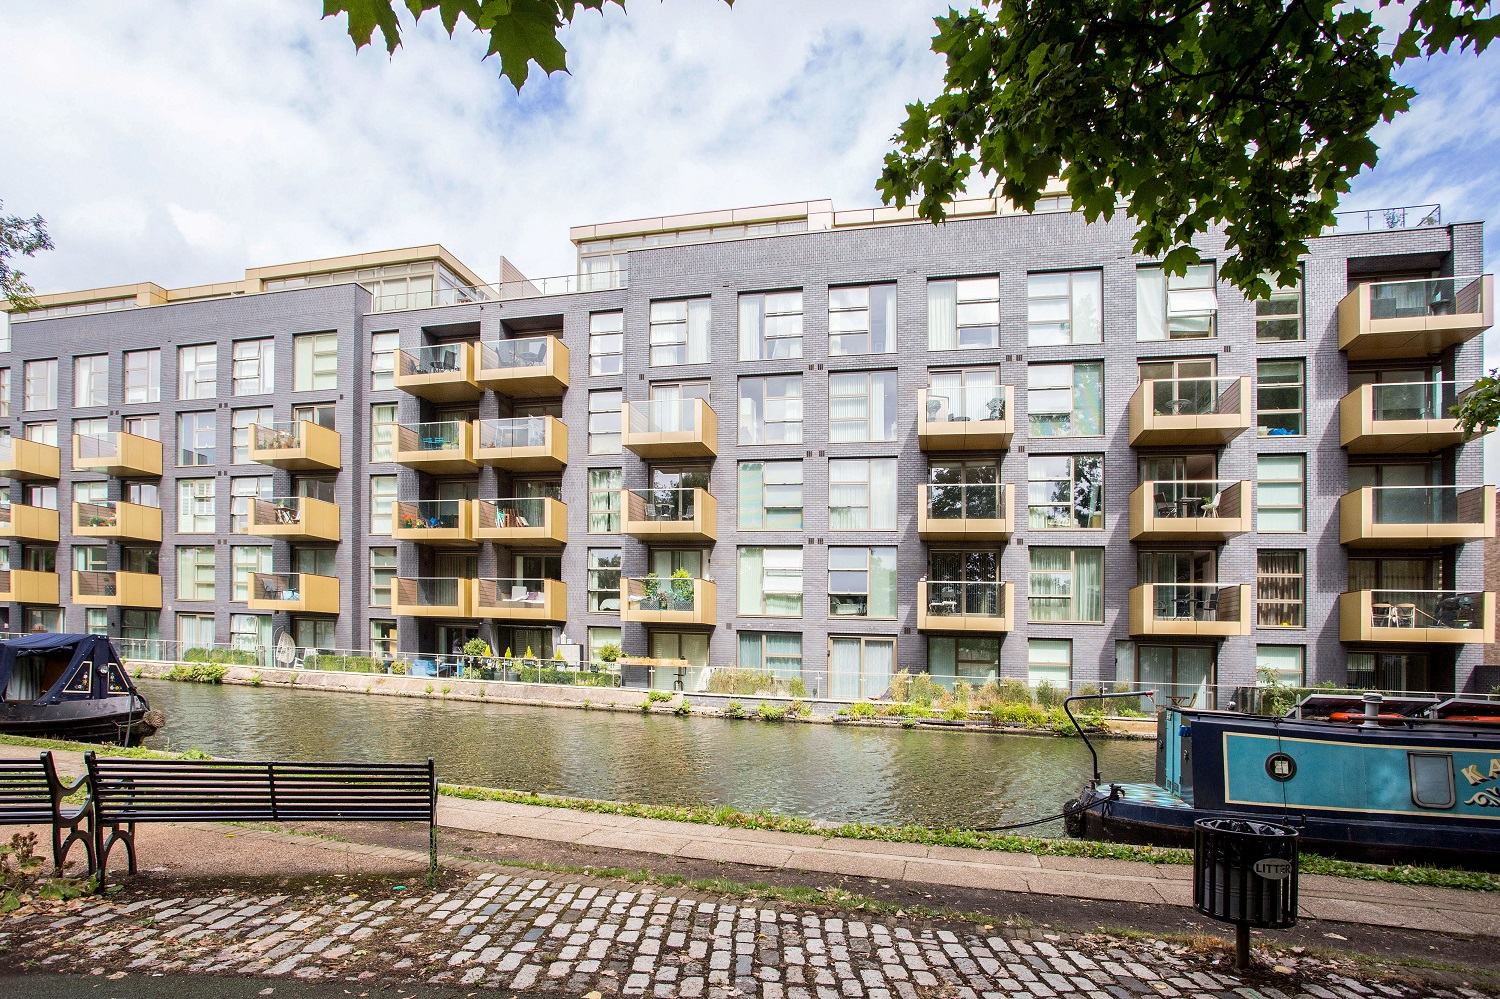 Amberley Waterfront Apartments, London W9